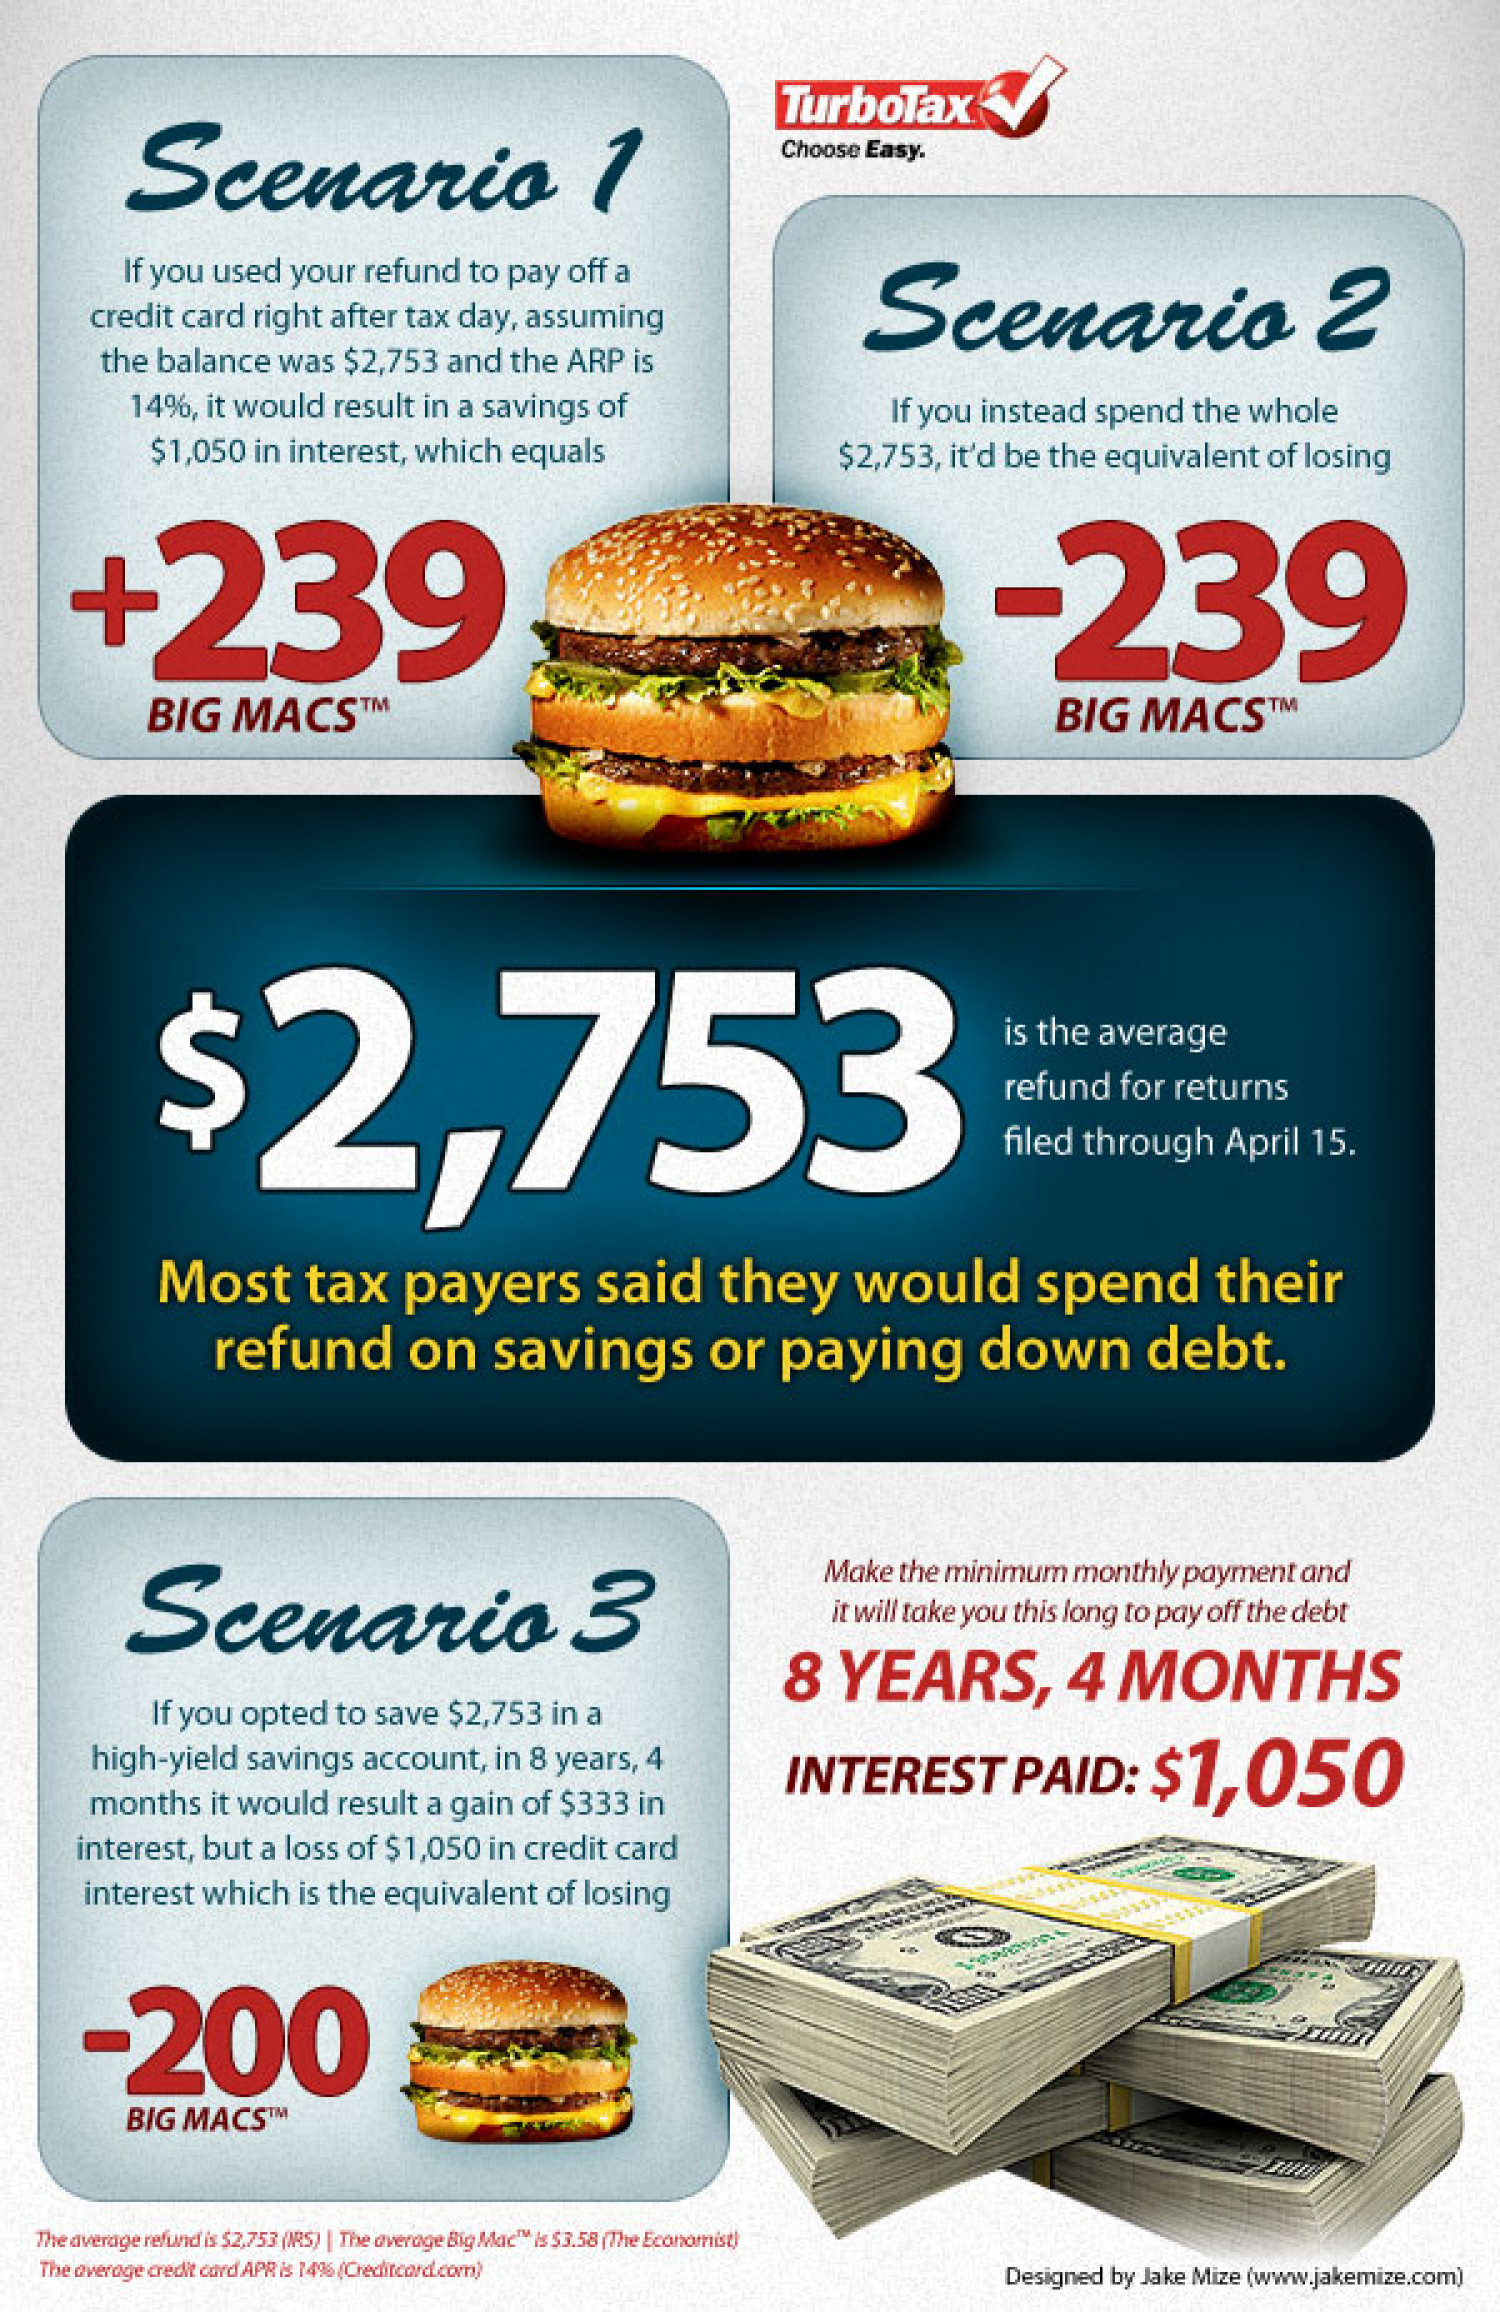 How Will You Spend Your Refund? Infographic